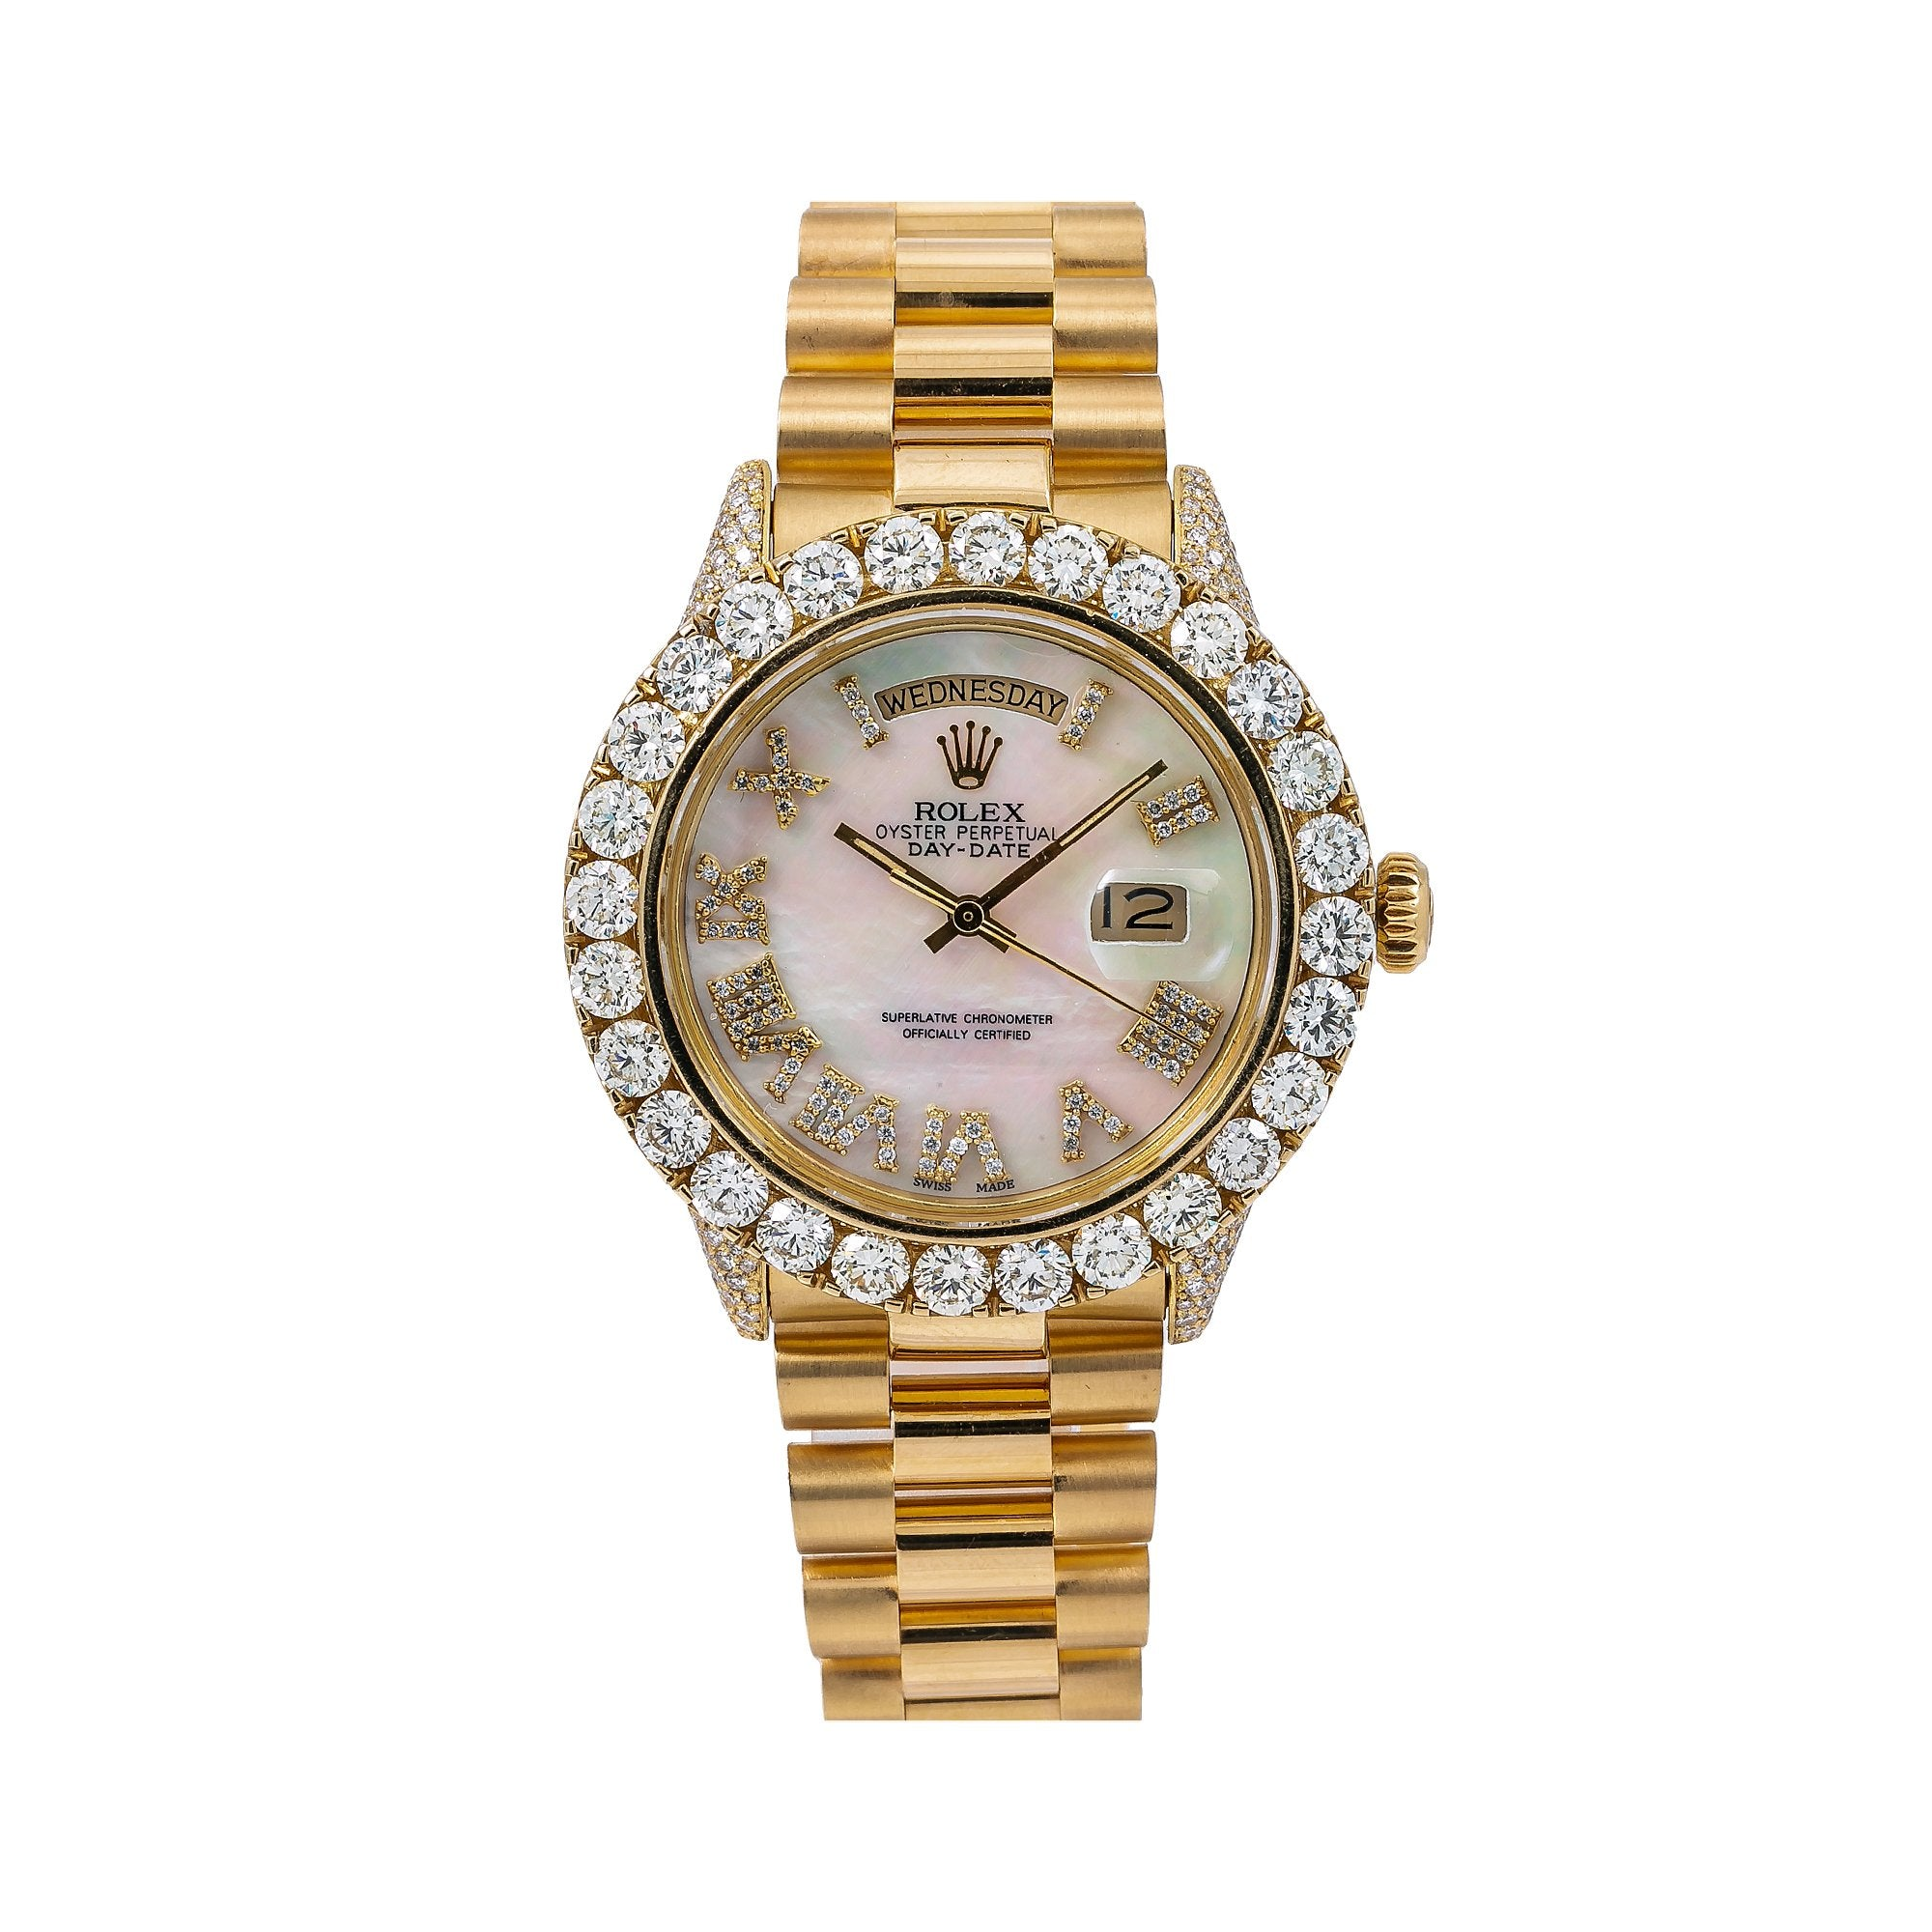 Rolex Day-Date Diamond Watch, 1803 36mm, White Mother of Pearl Diamond Dial With Yellow Gold Bracelet